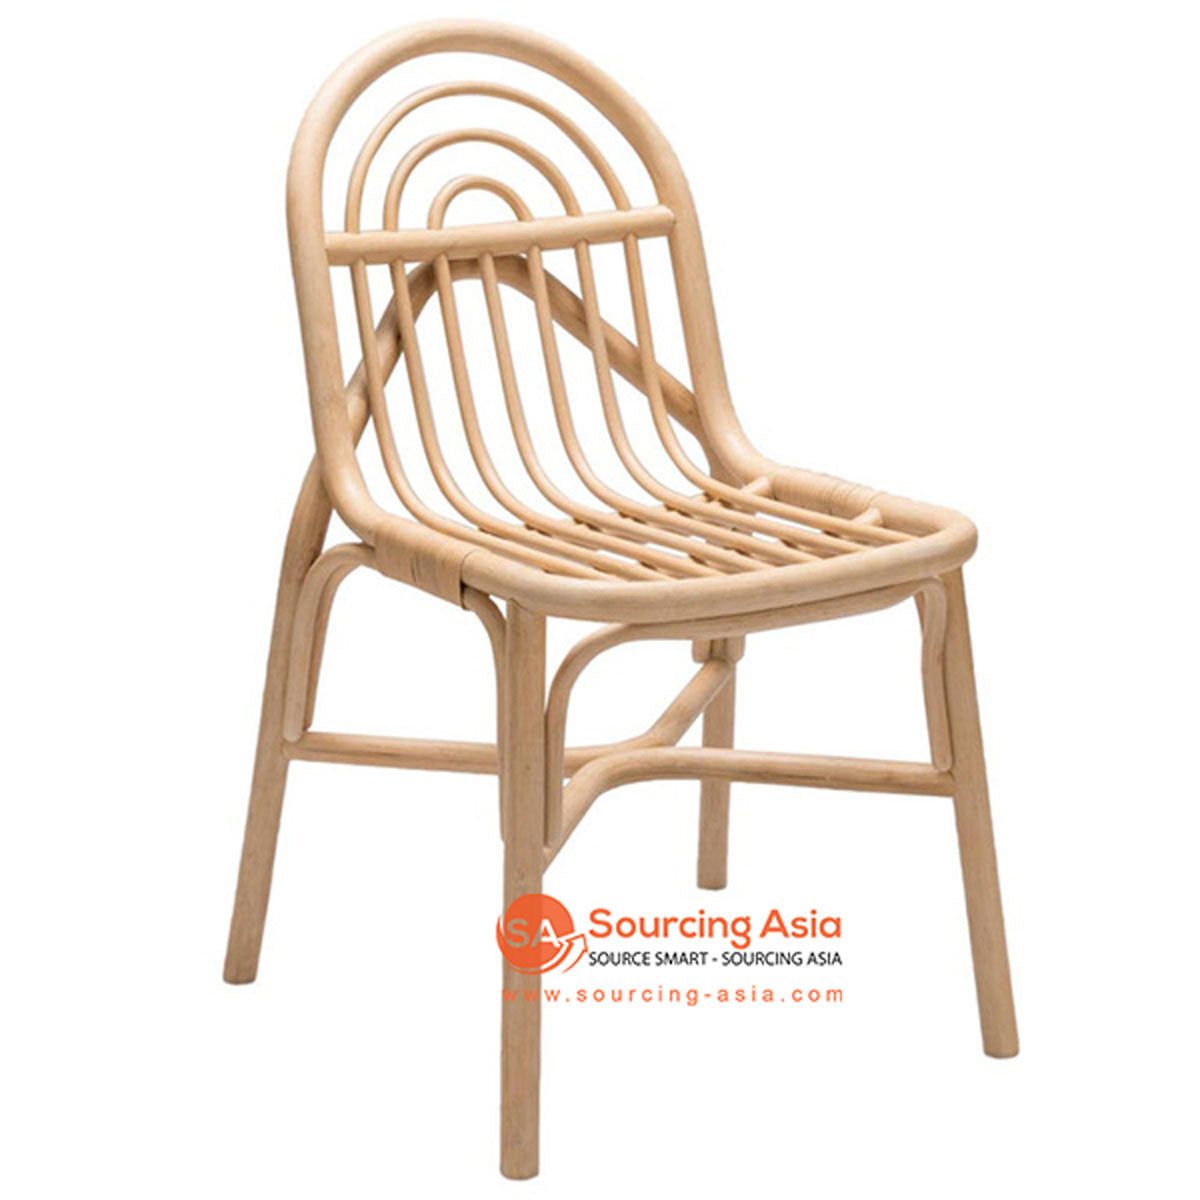 SHL114 NATURAL RATTAN UPHOLSTERED CHAIR